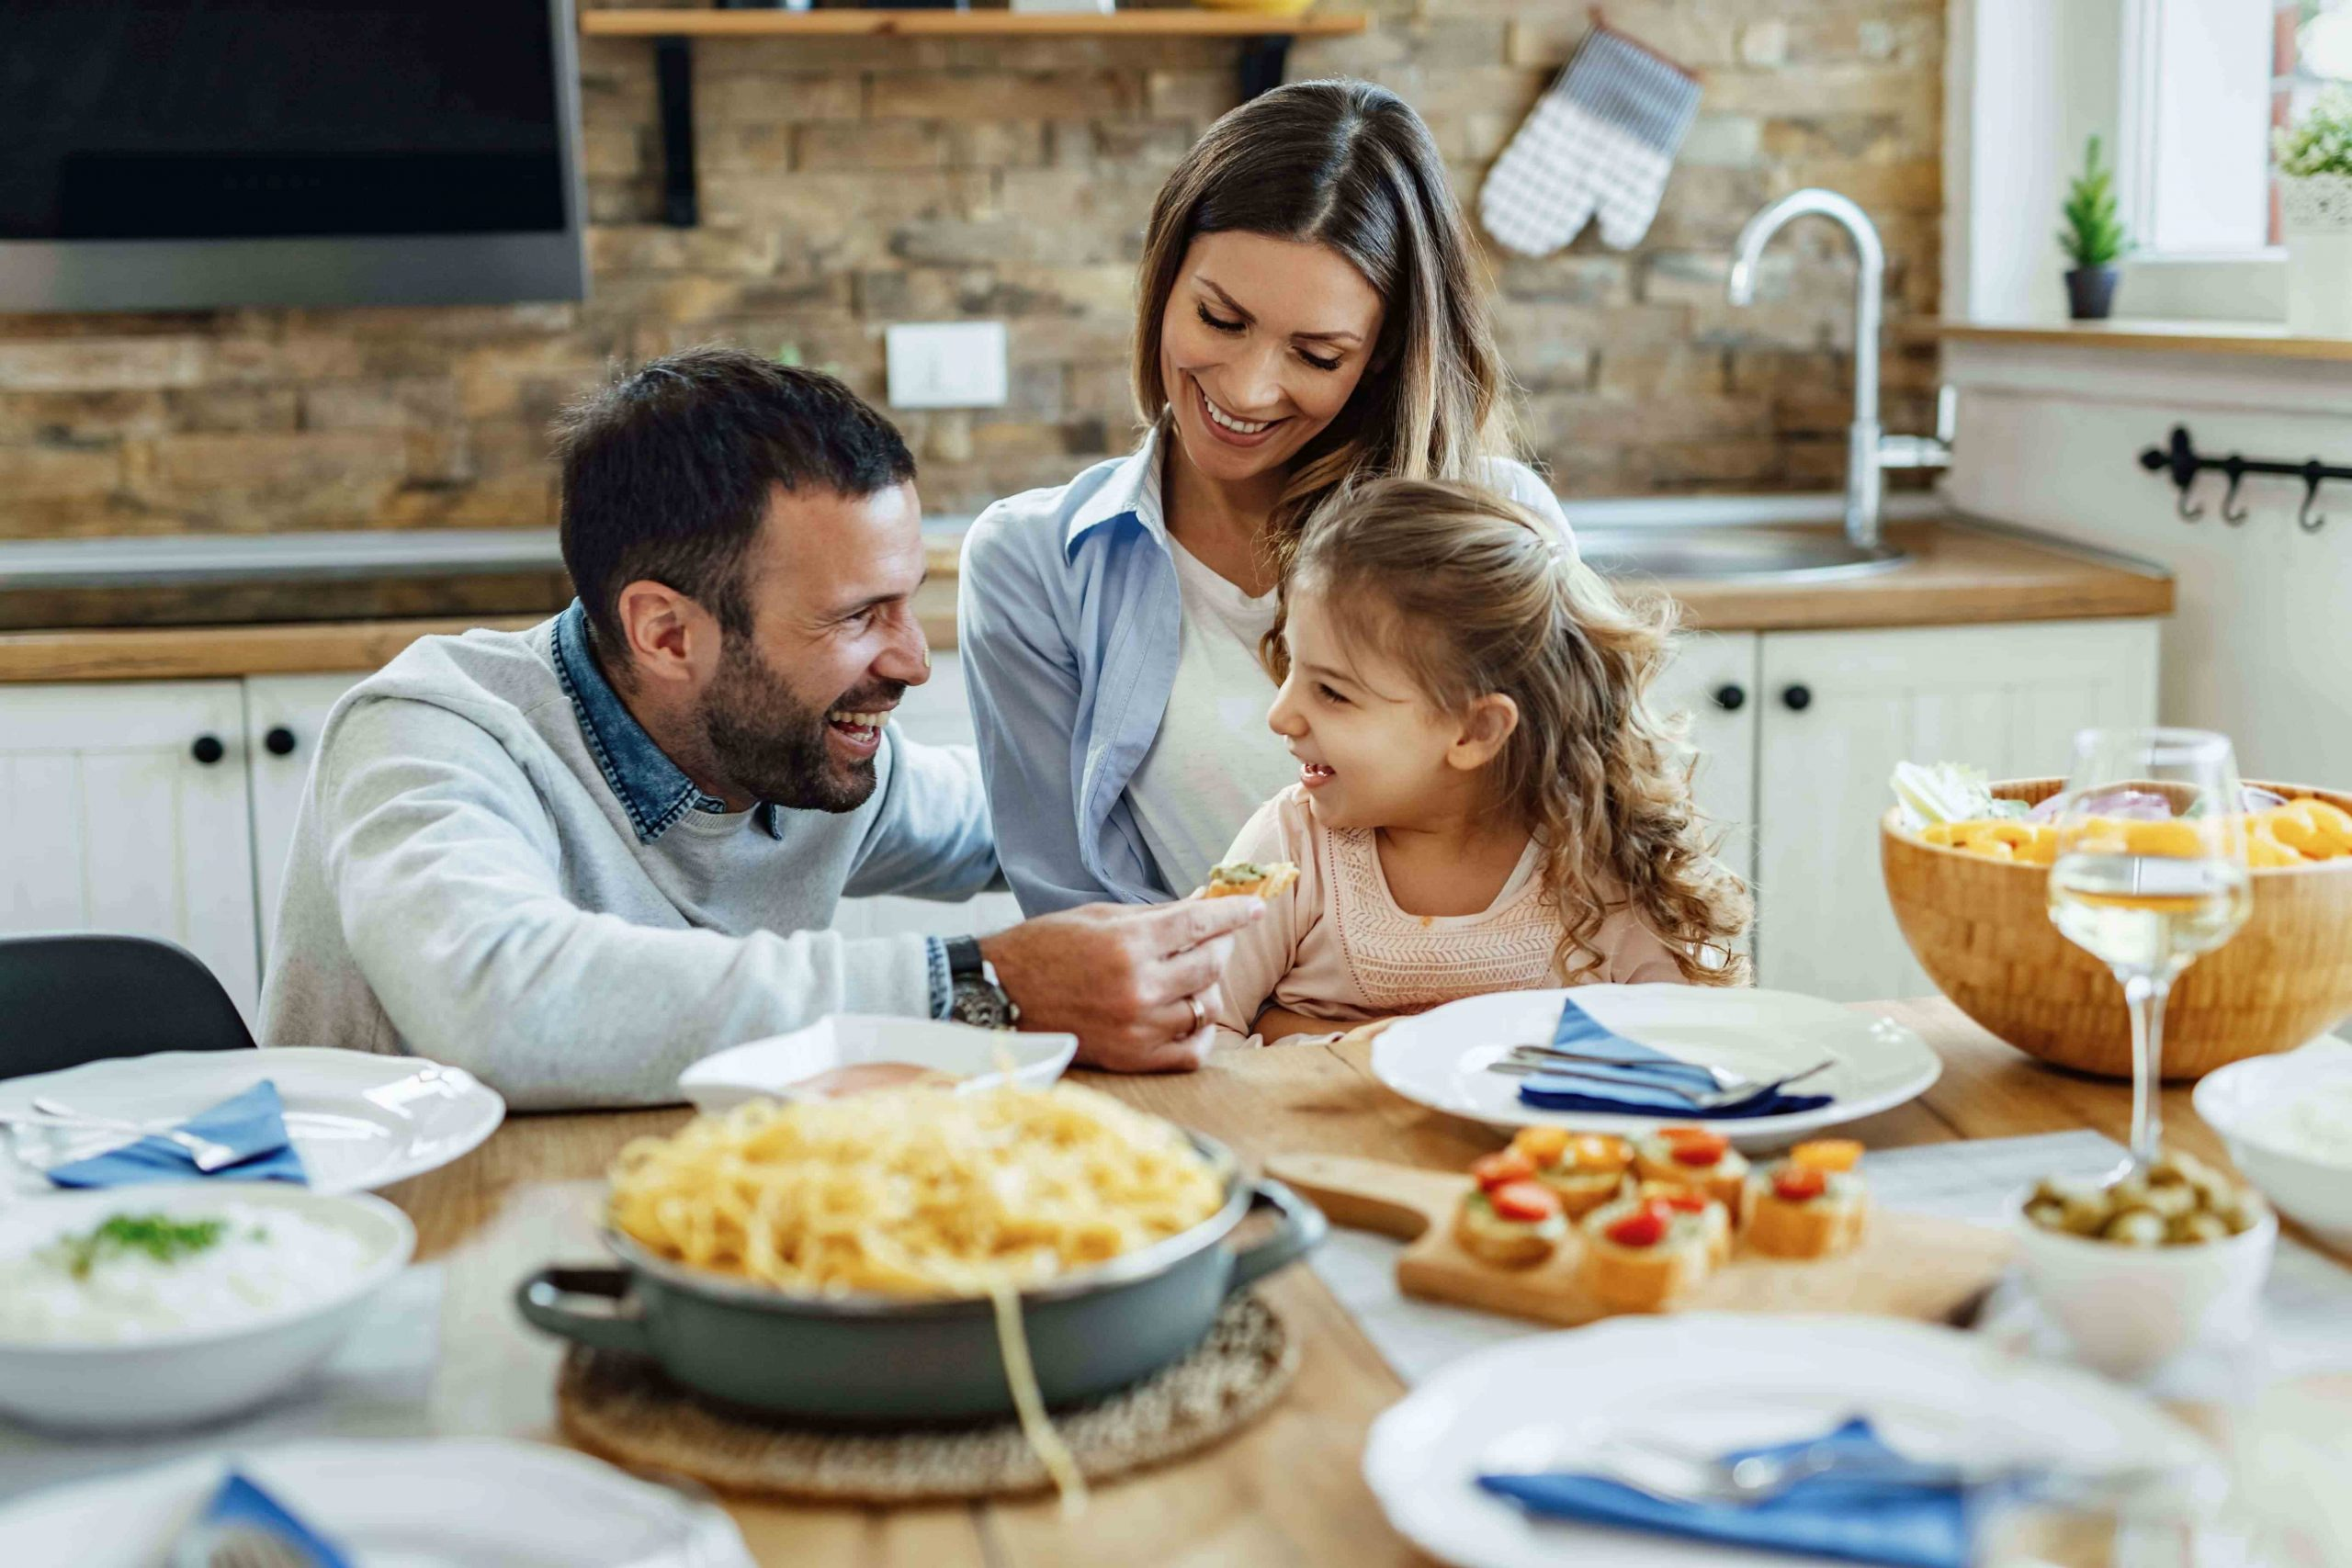 Happy parents and their small daughter having fun during family lunch at home.